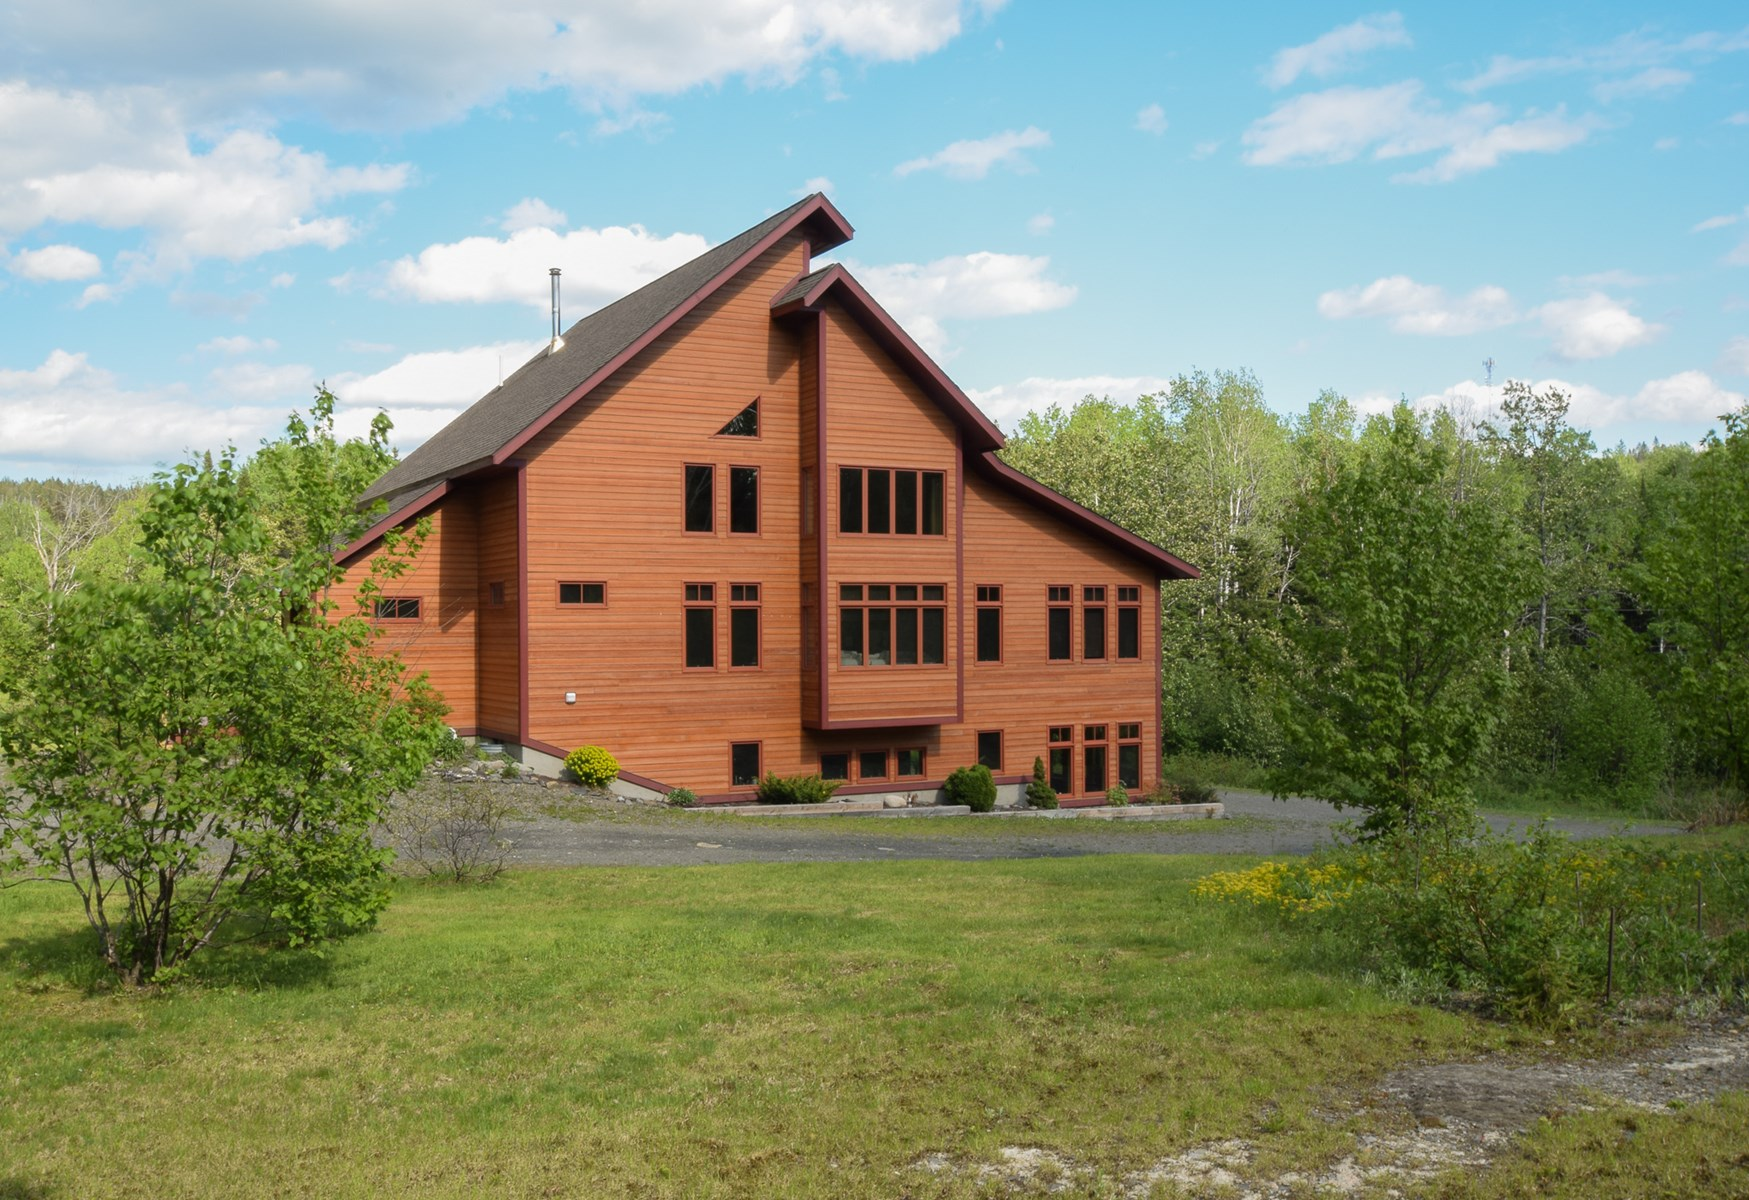 Maine Contemporary Country Home for Sale - Fort Kent, Maine